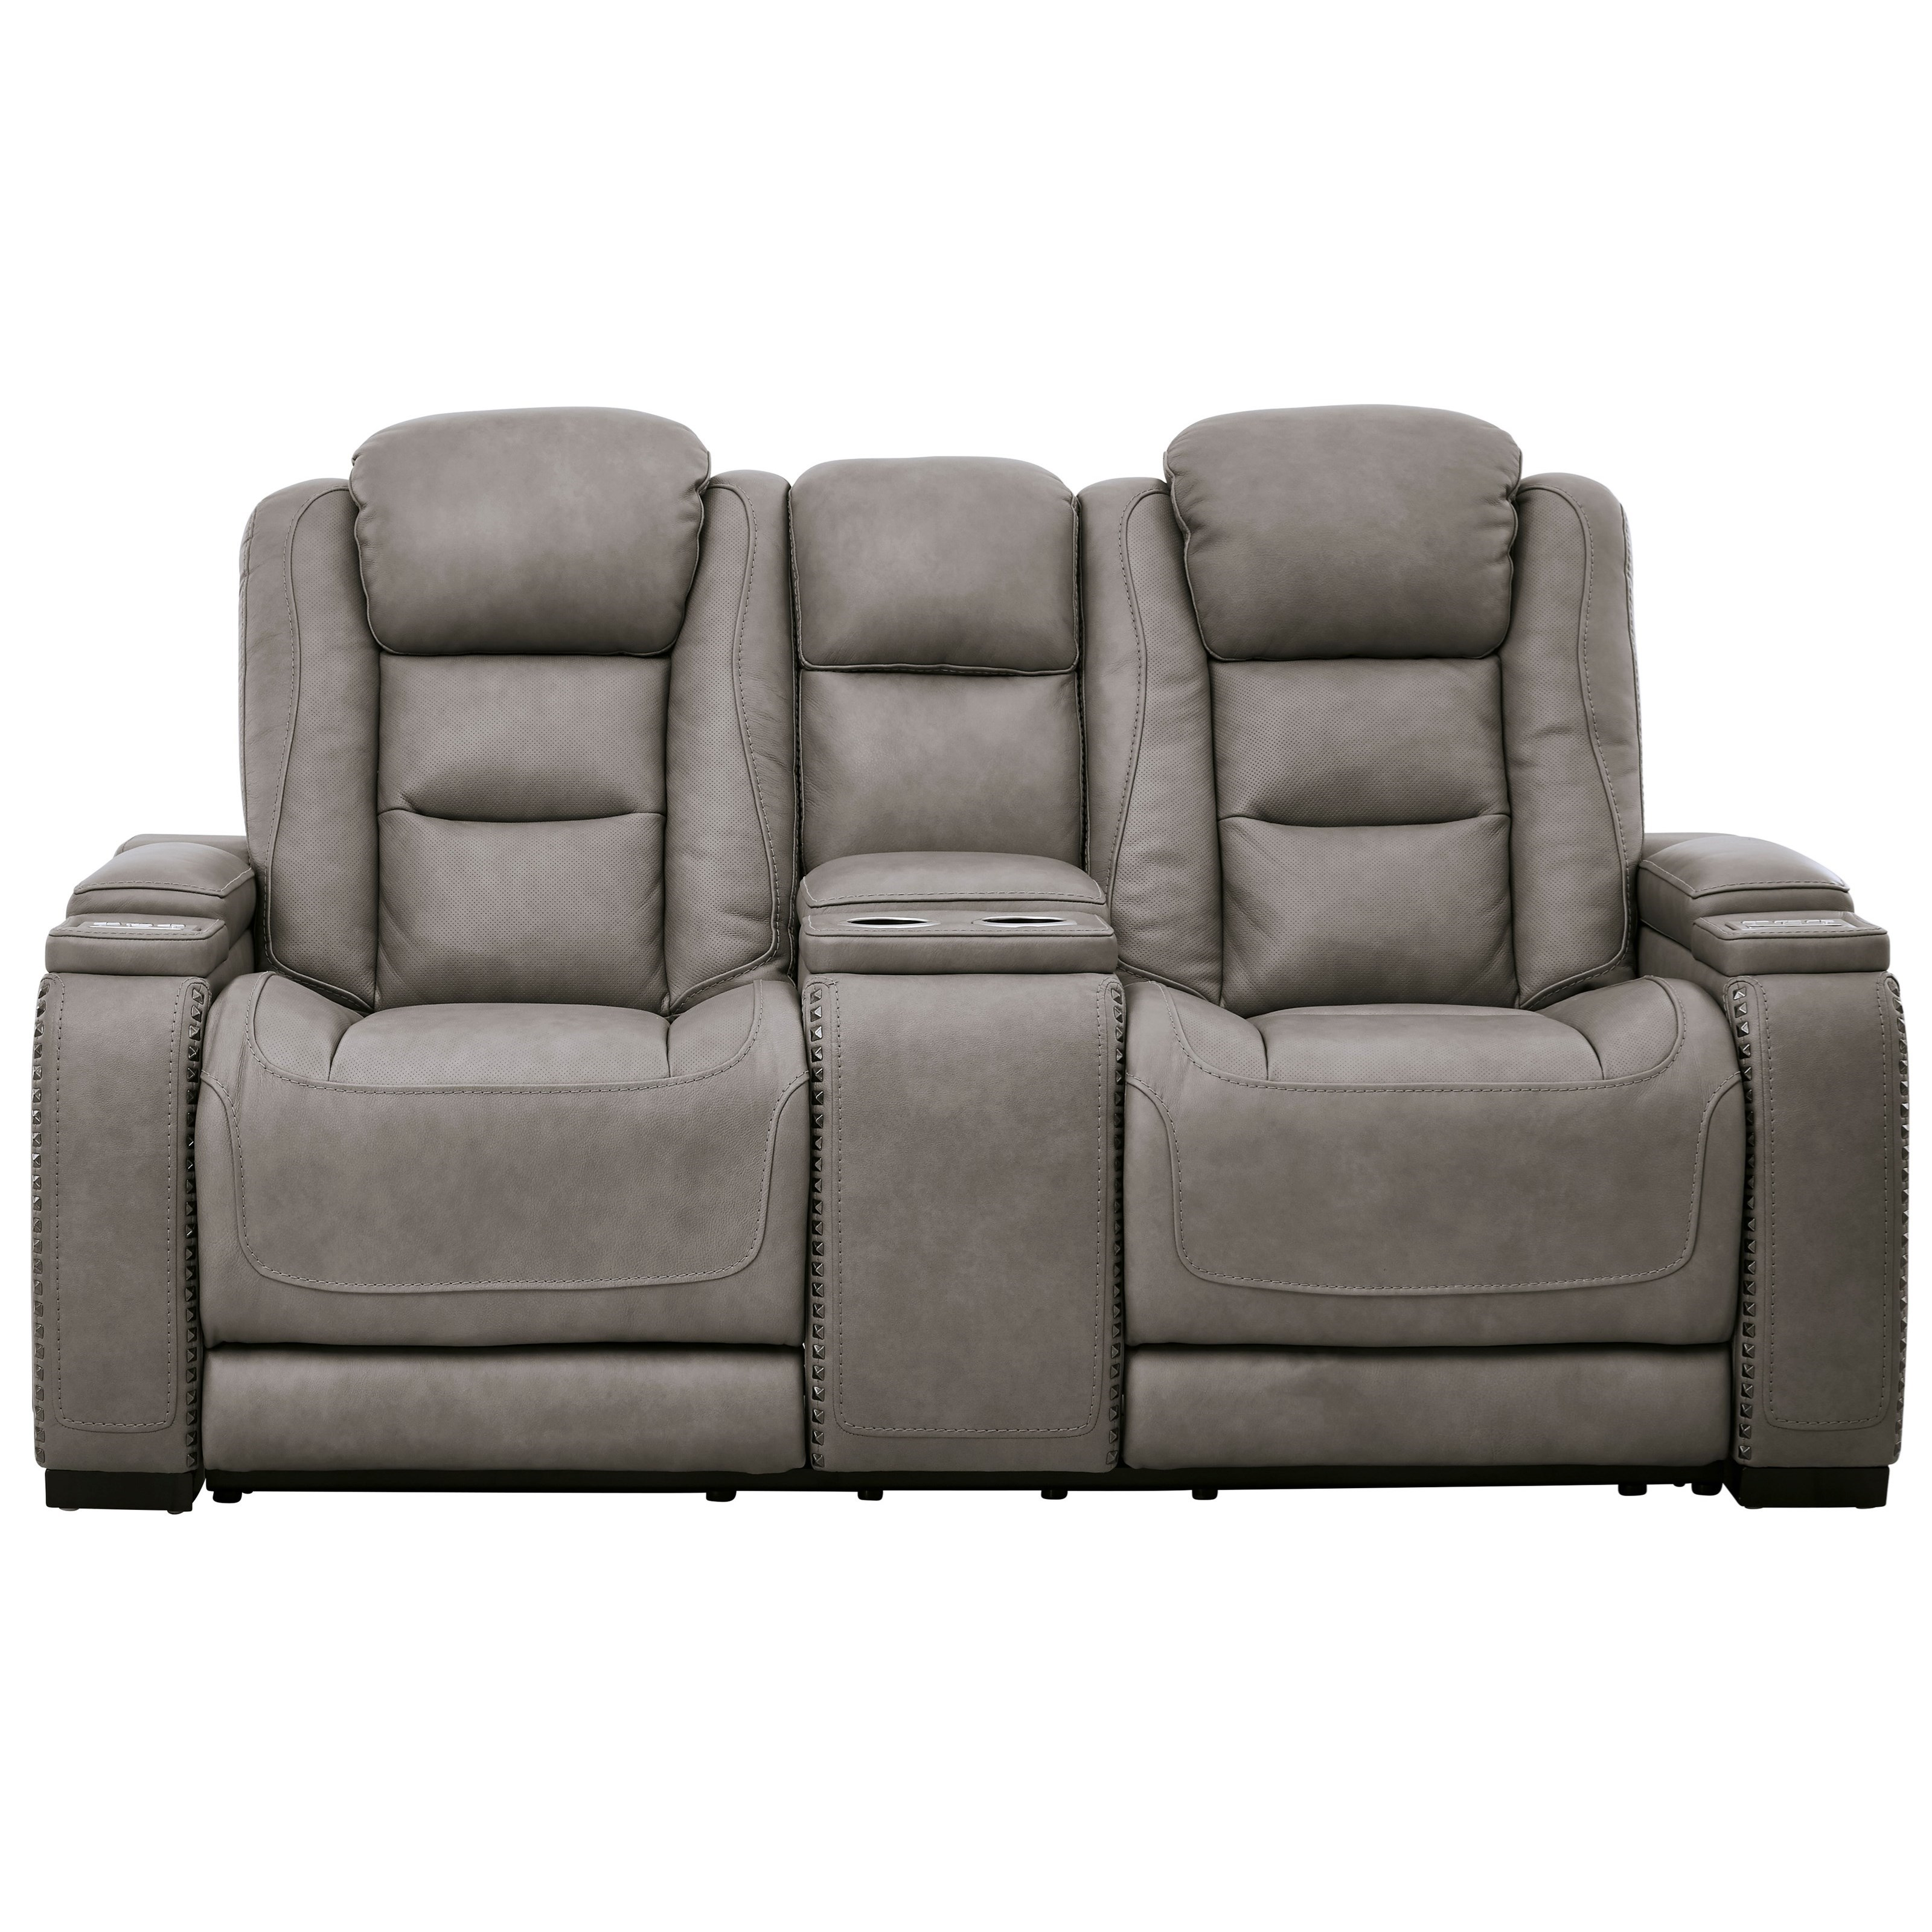 The Man-Den Power Reclining Loveseat with Console by Ashley (Signature Design) at Johnny Janosik